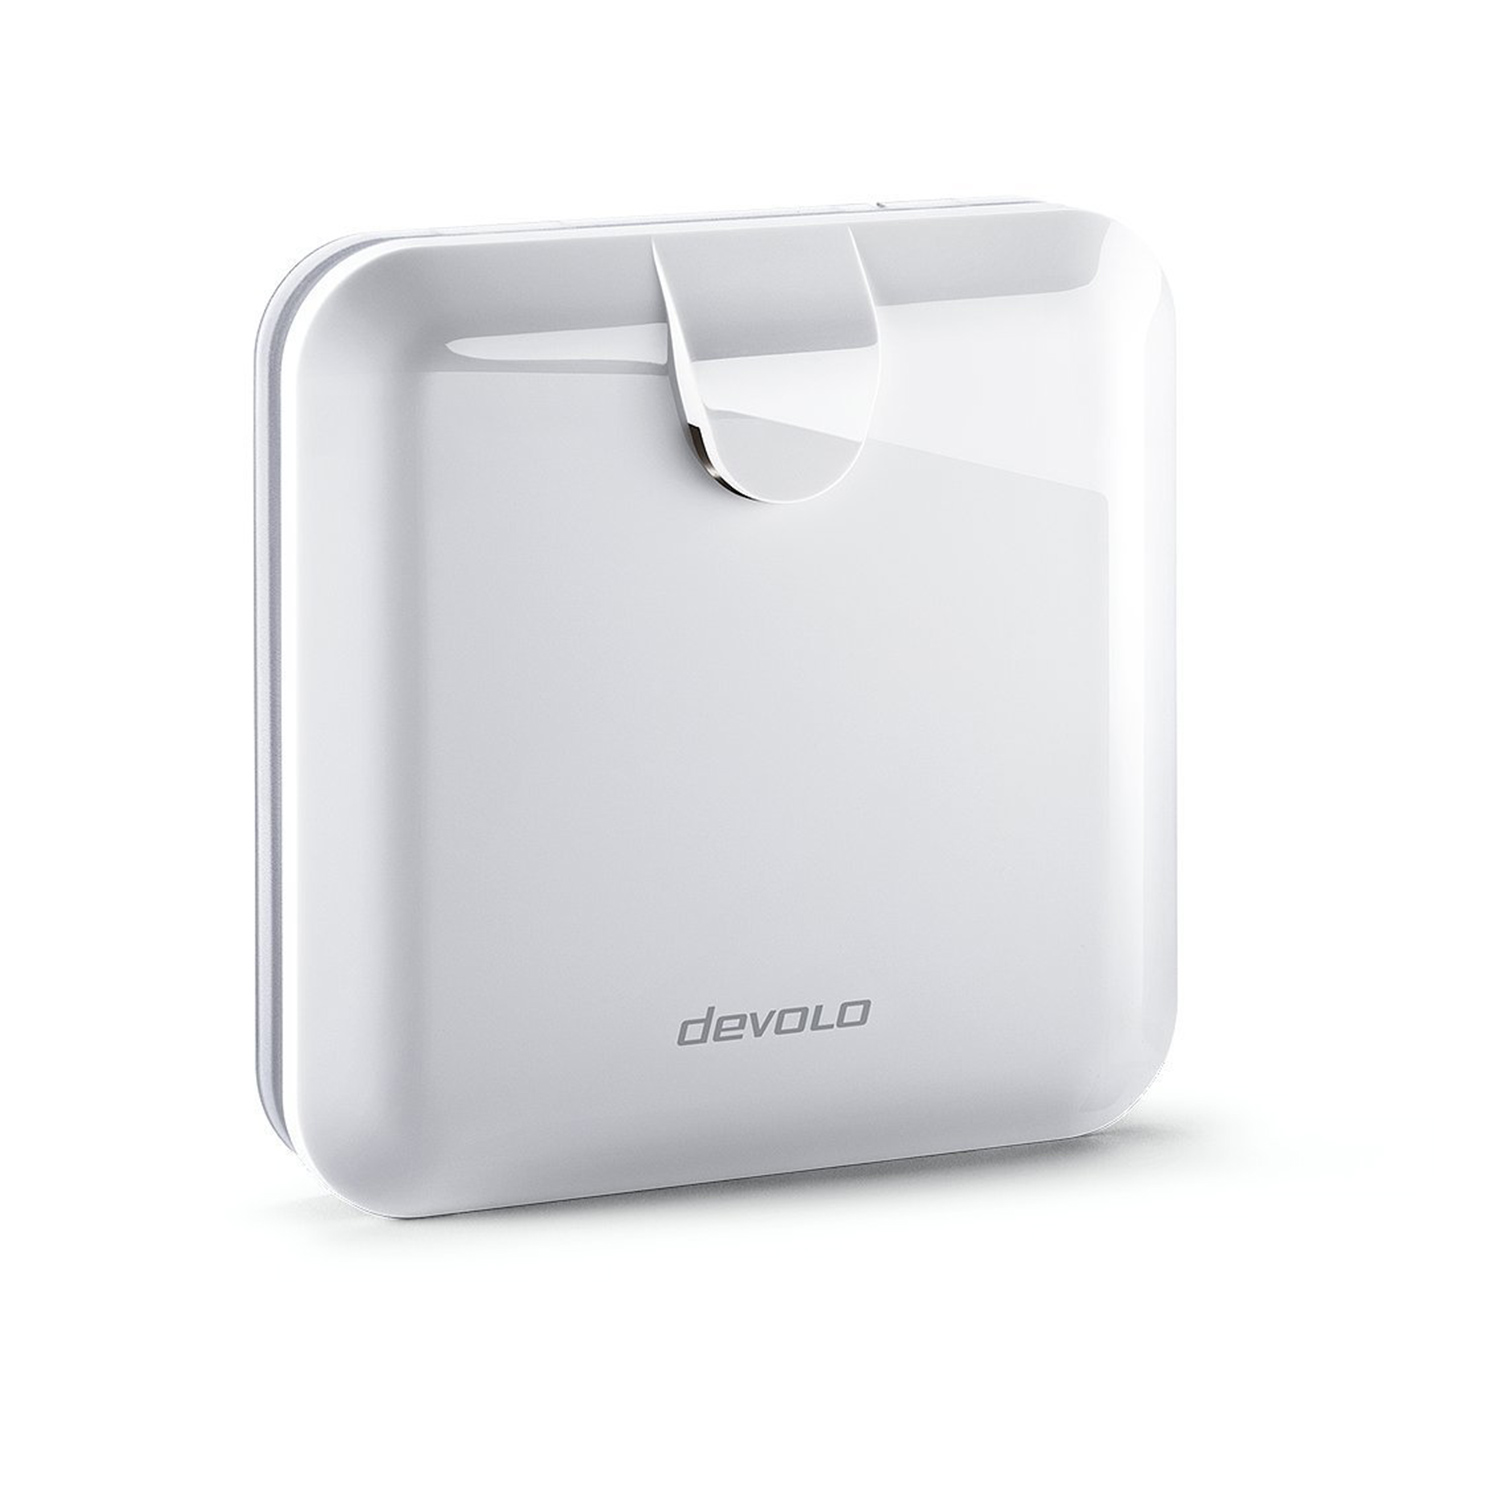 devolo Home Control Alarmsirene 9677